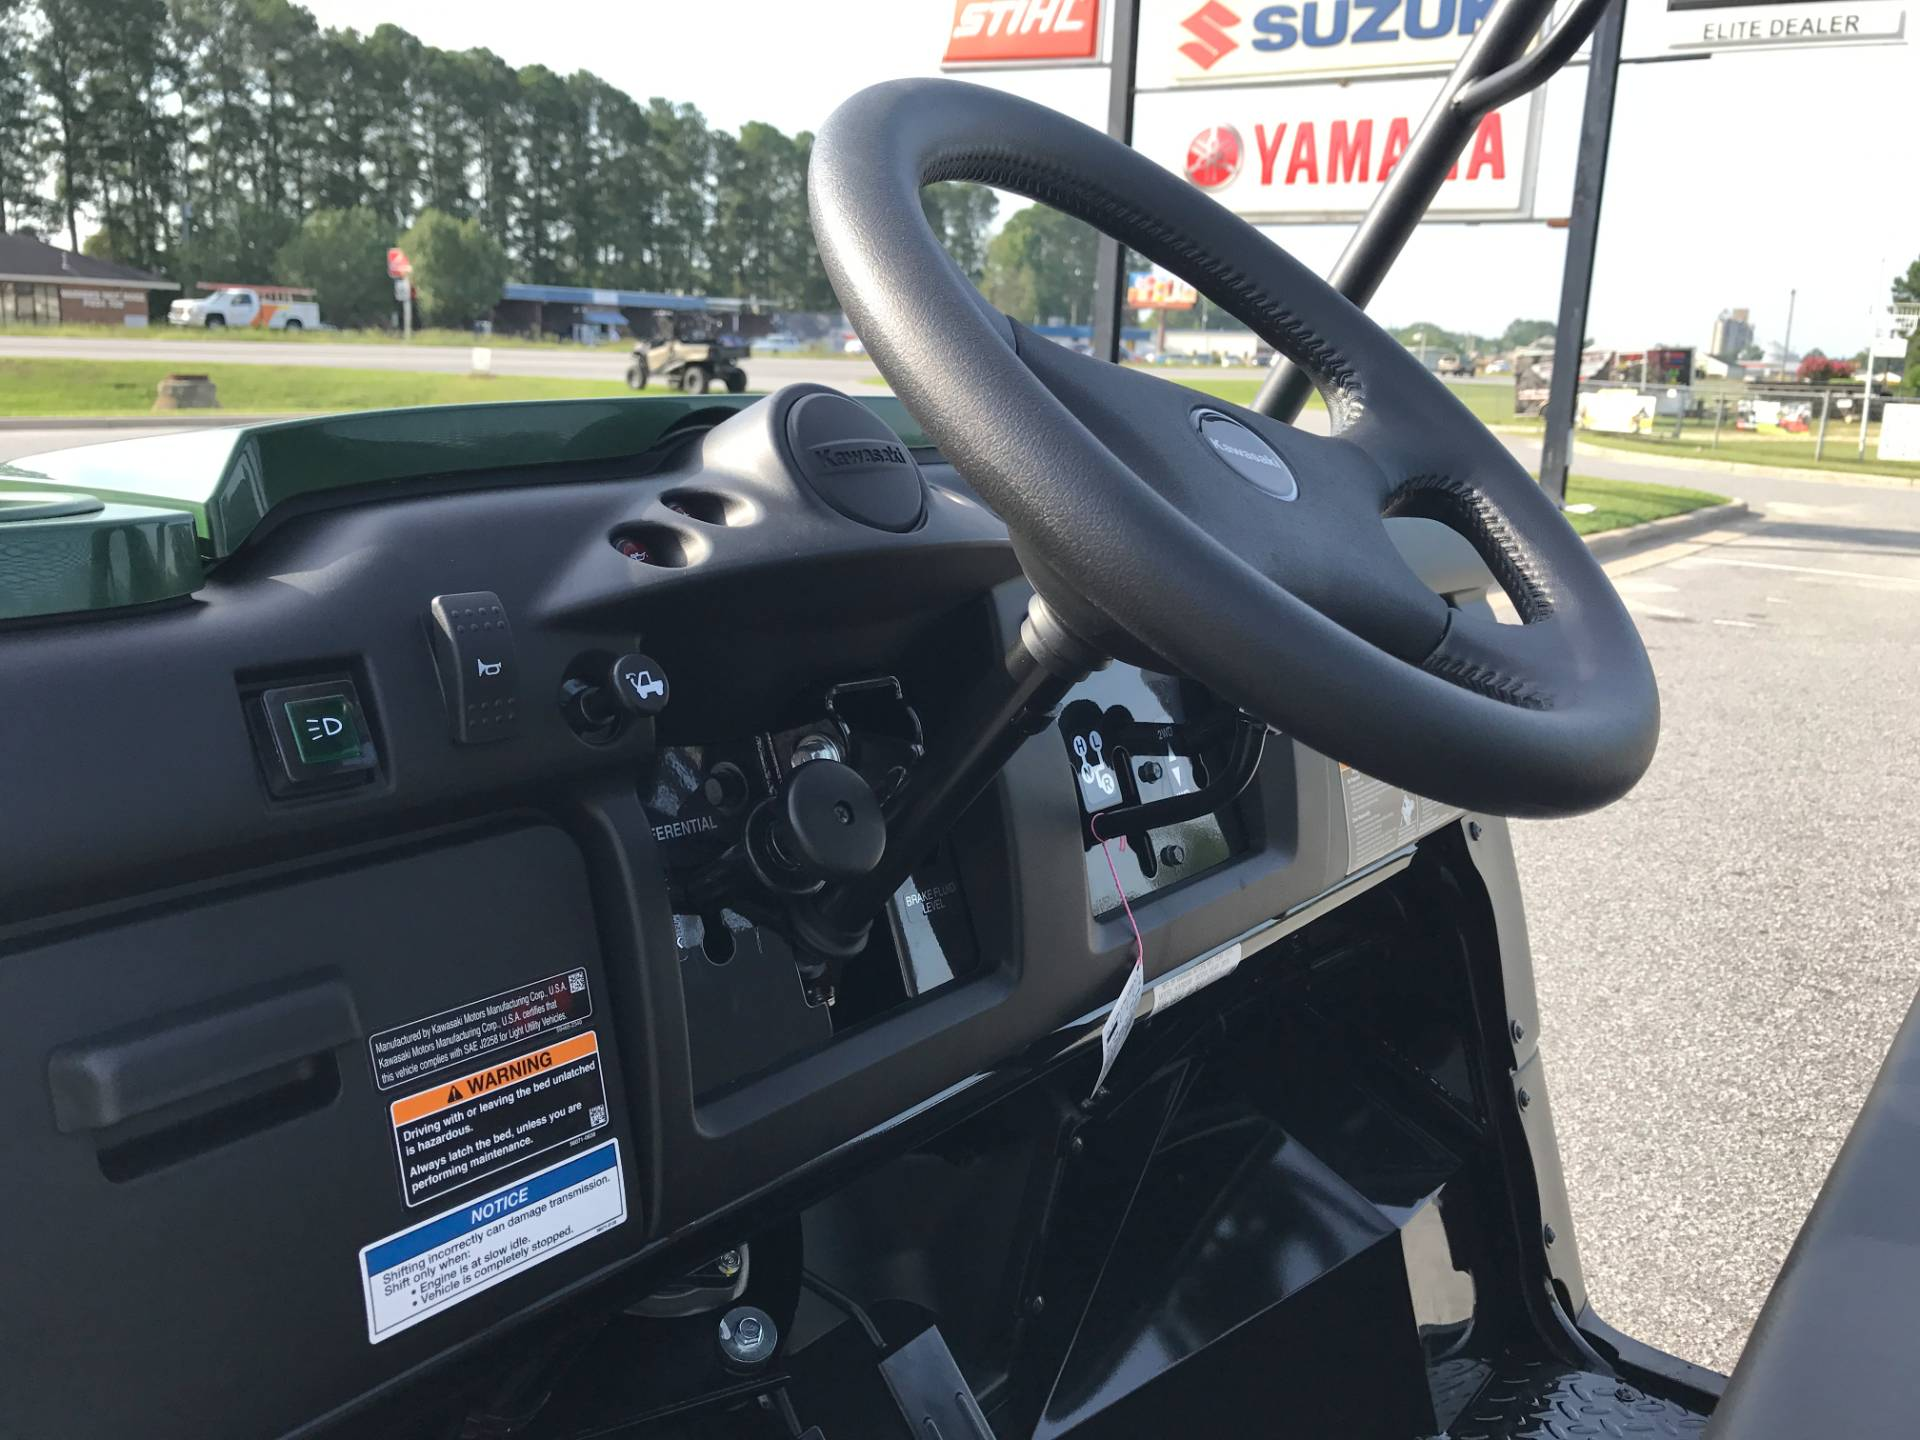 2018 Kawasaki Mule 4010 4x4 in Greenville, North Carolina - Photo 21